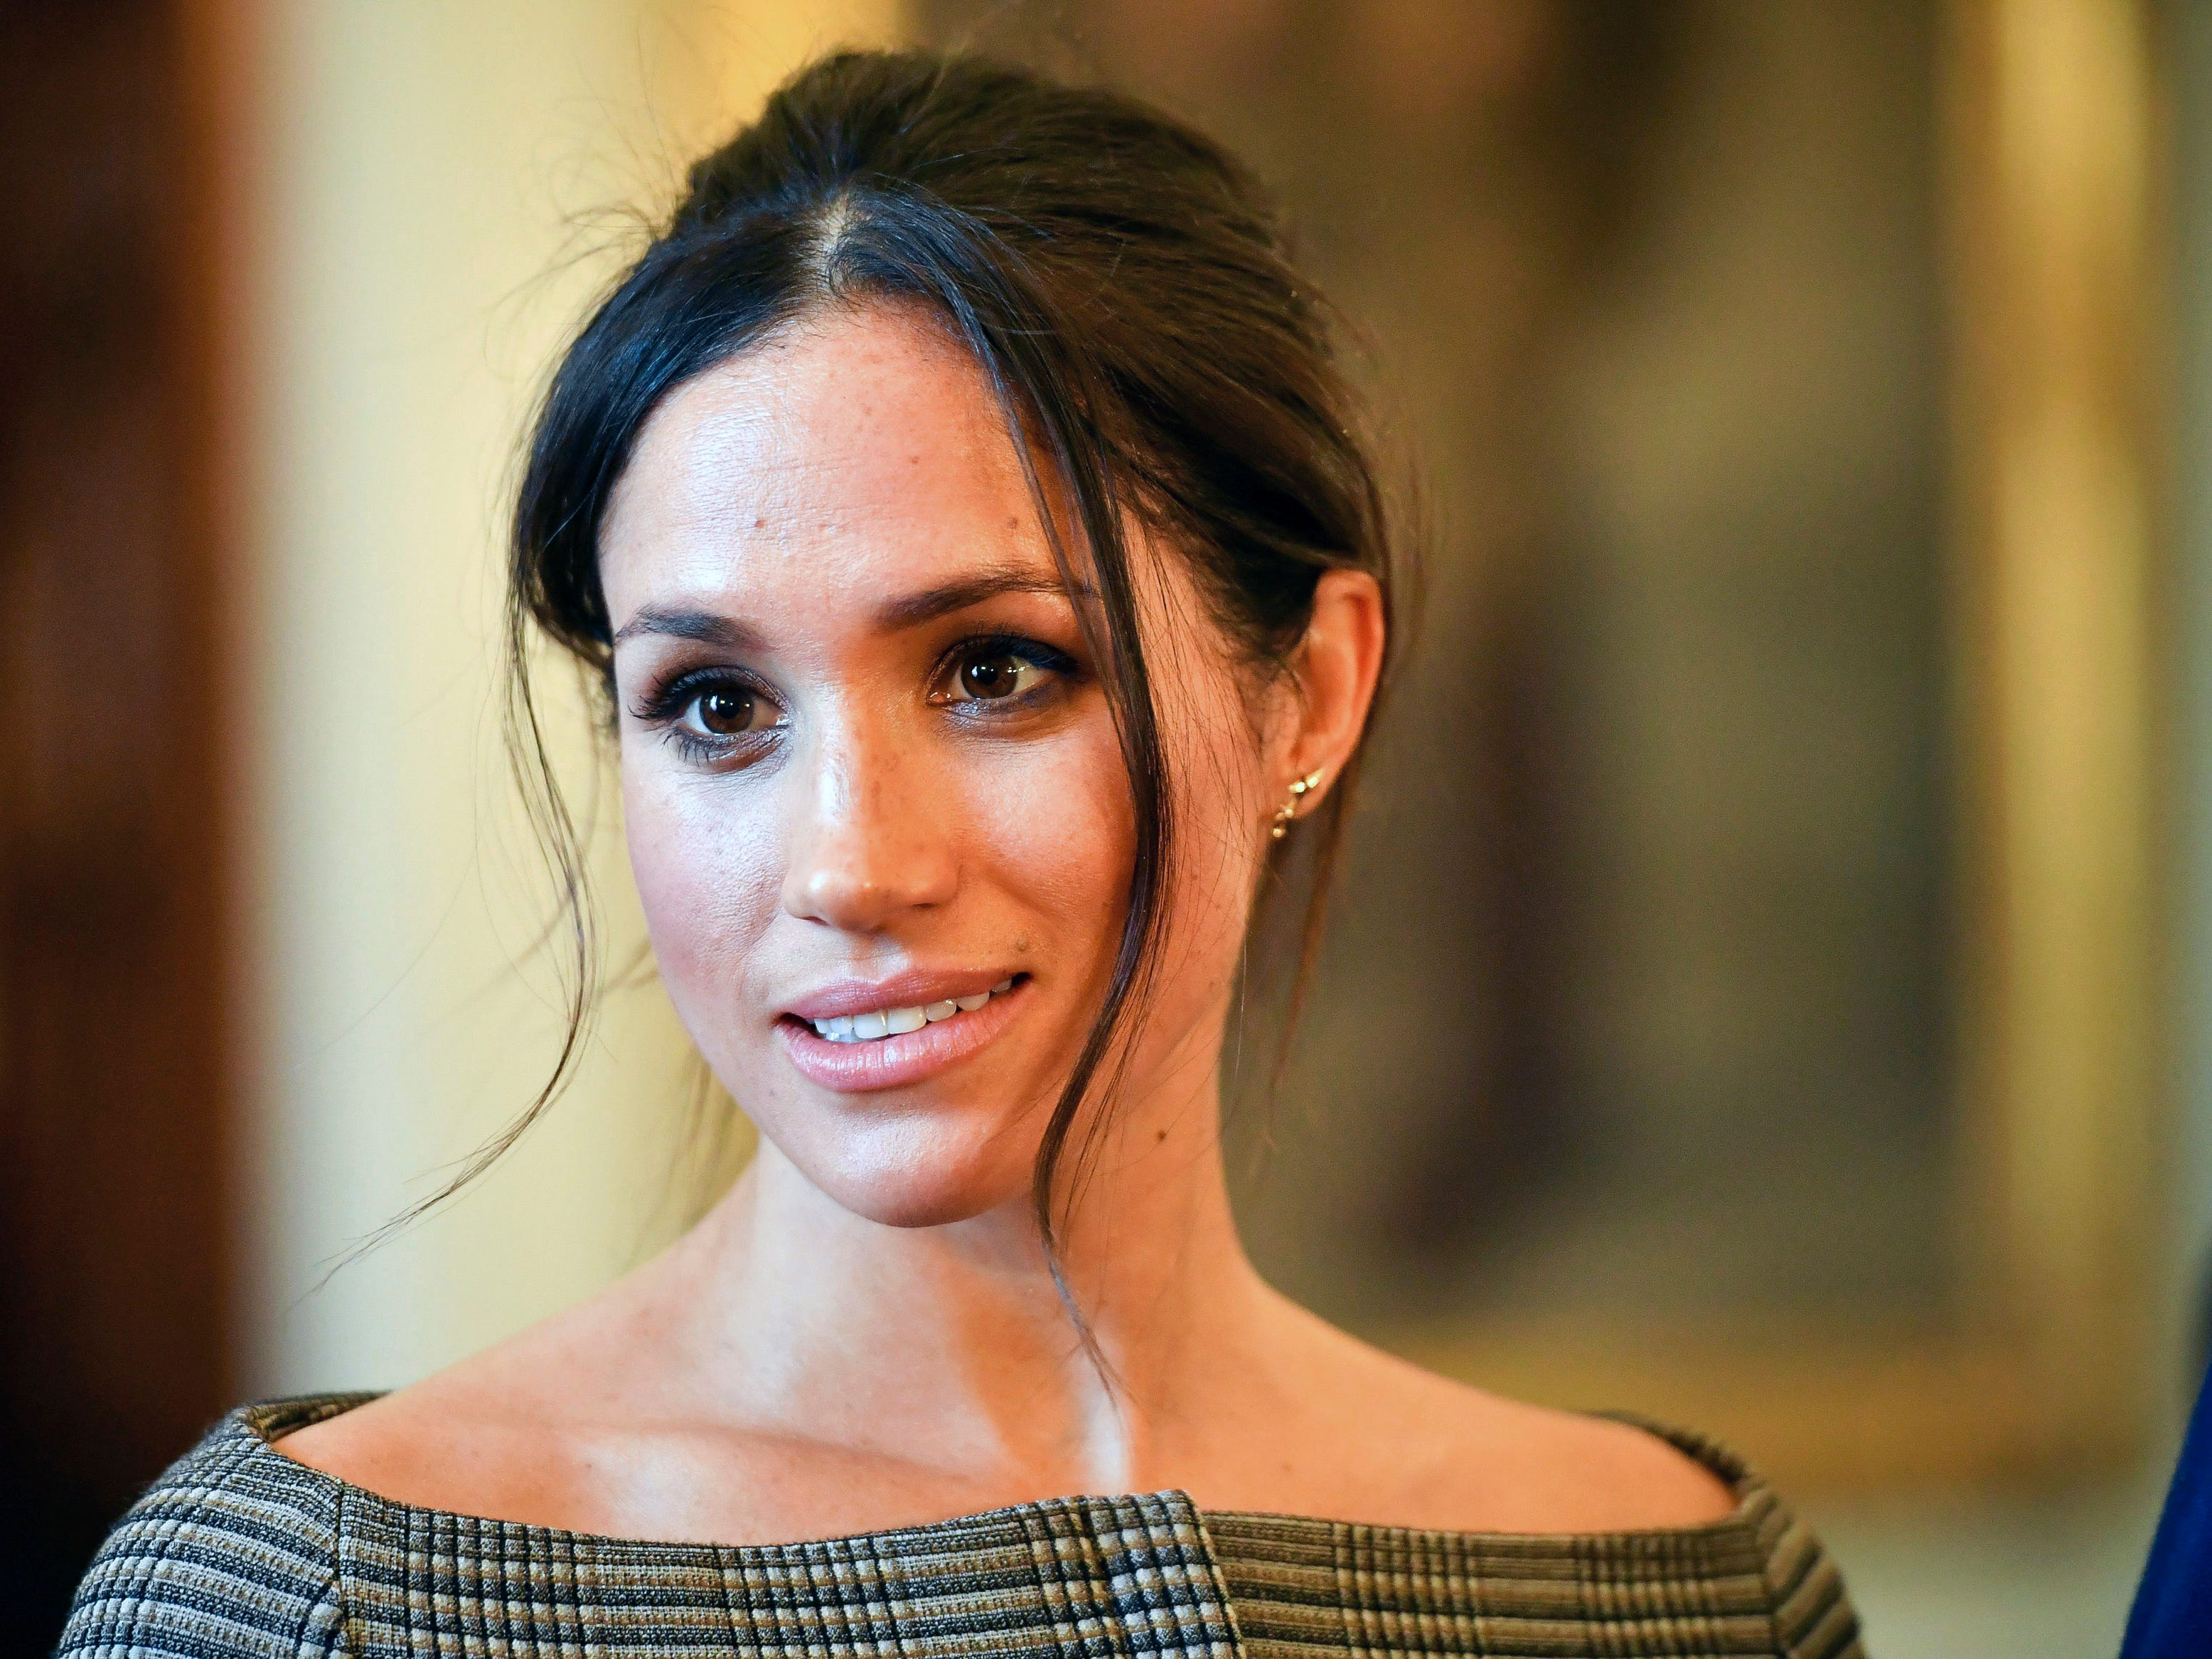 Meghan Markle wore a messy bun while visiting Cardiff Castle in Wales on Jan. 18, 2018.